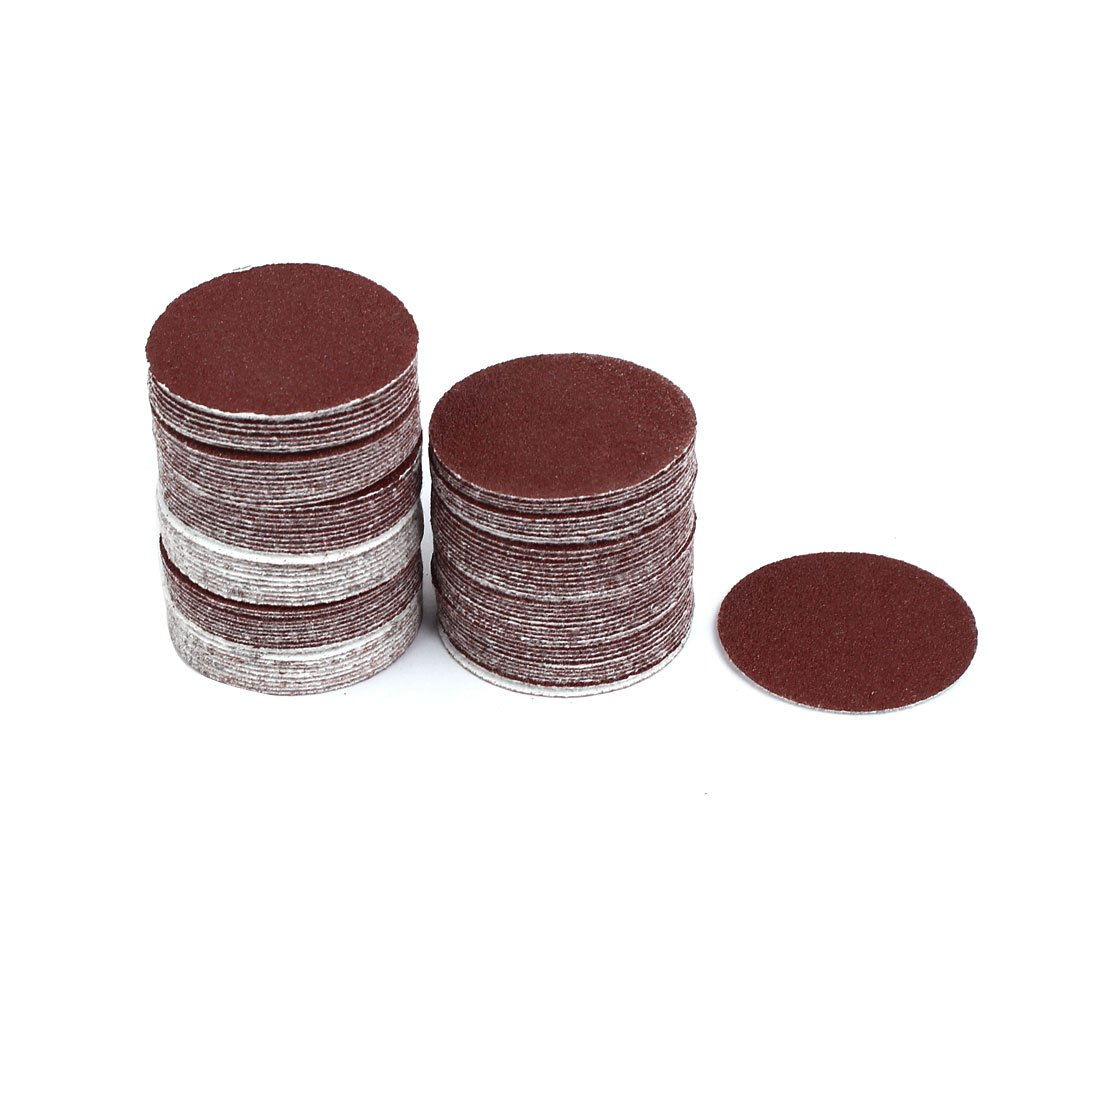 uxcell 2-inch Dia 80 Grits Self-stick Sanding Disc Polishing Pad Flocking Sandpaper 100pcs